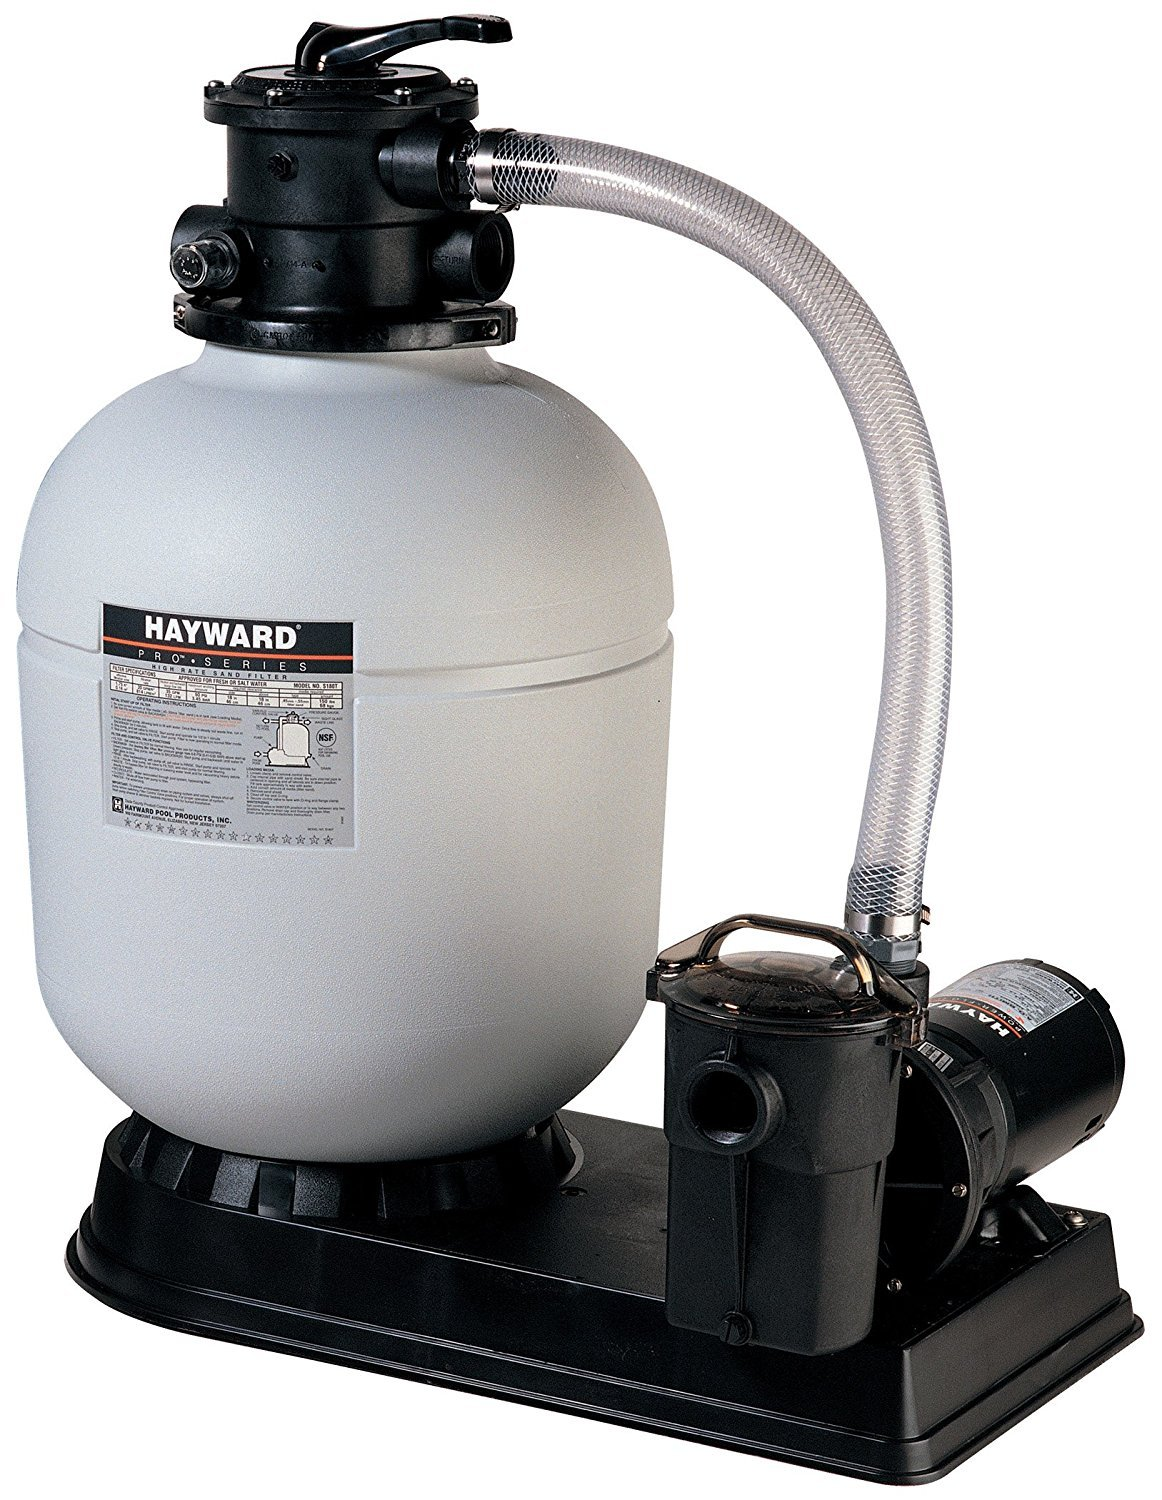 Hayward S180T92S ProSeries 18-Inch 1 HP Sand Filter System by Hayward